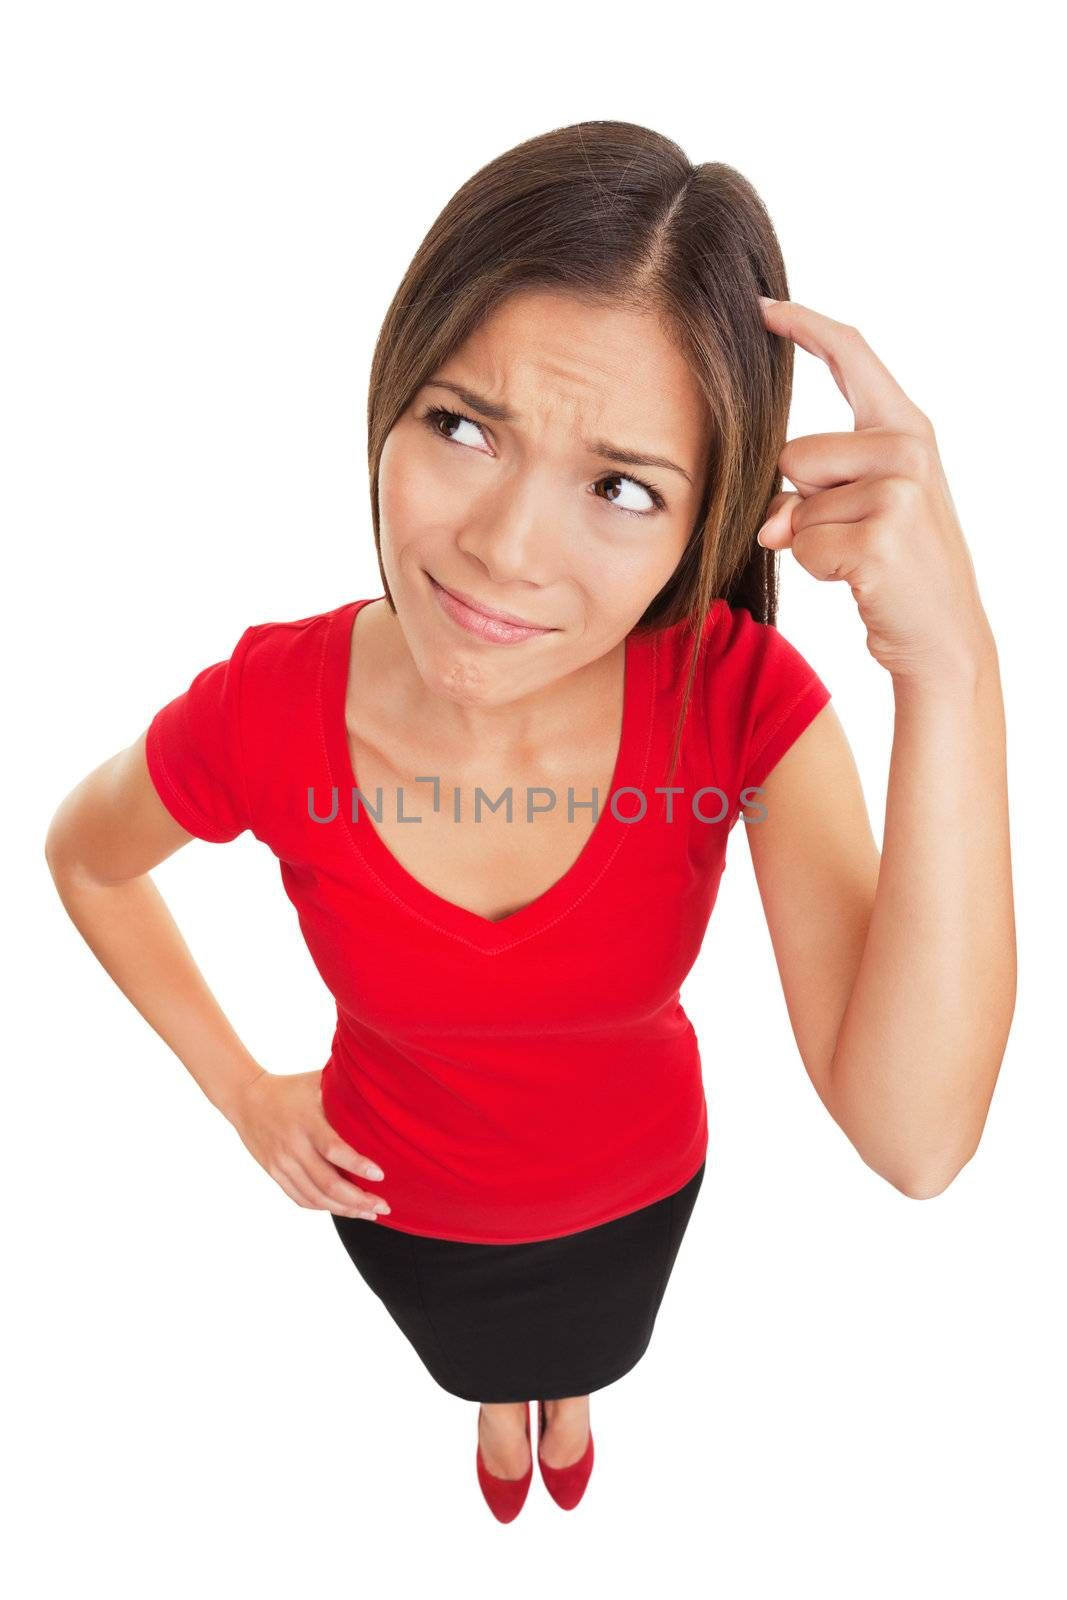 Contused thinking woman. Funny high angle studio portrait of a bewildered and confused woman scratching her head as she seeks a solution isolated on white background. Multiethnic female model.